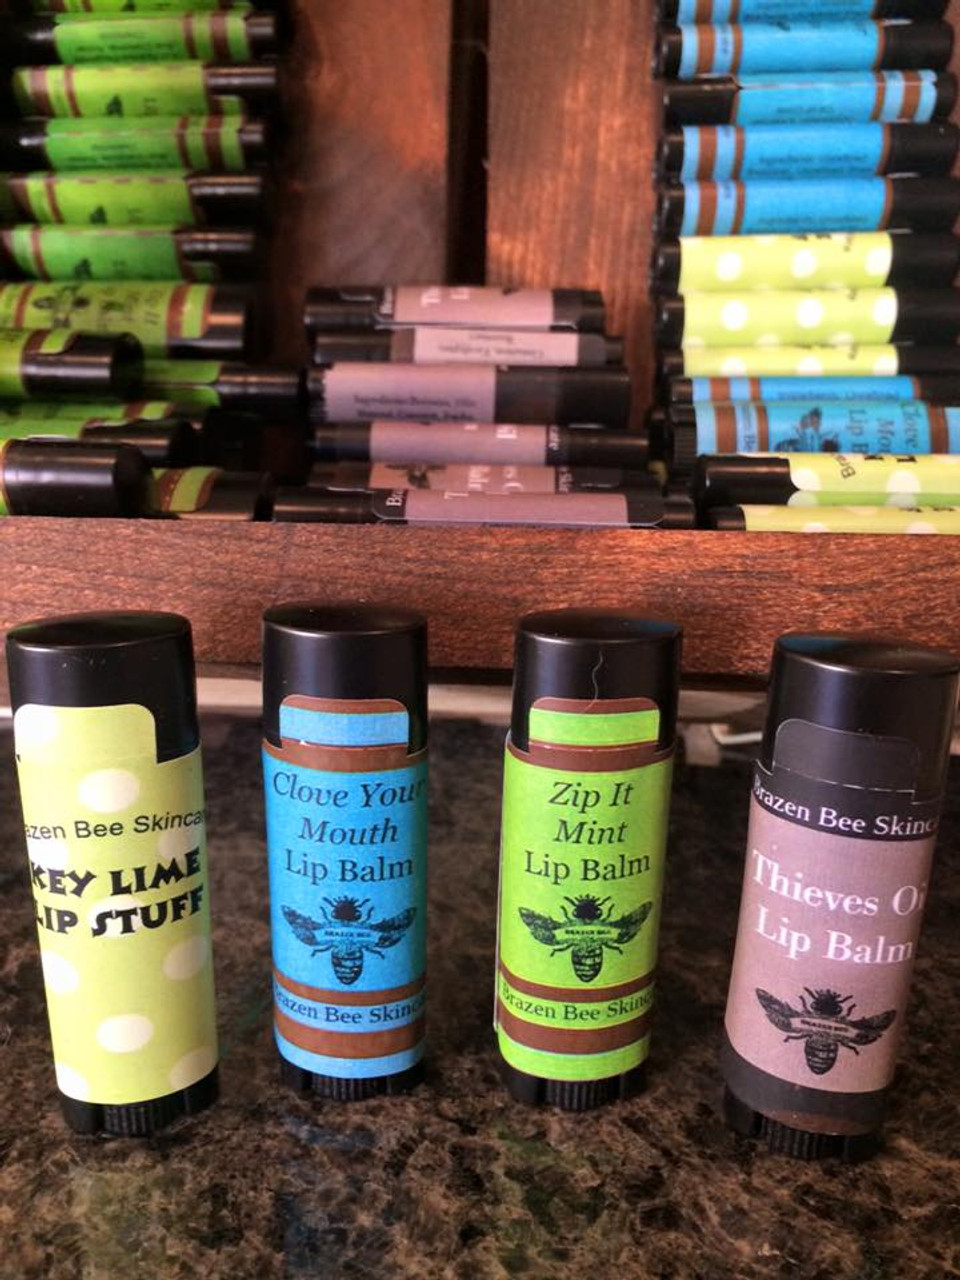 Clove Your Mouth | LIP BALM